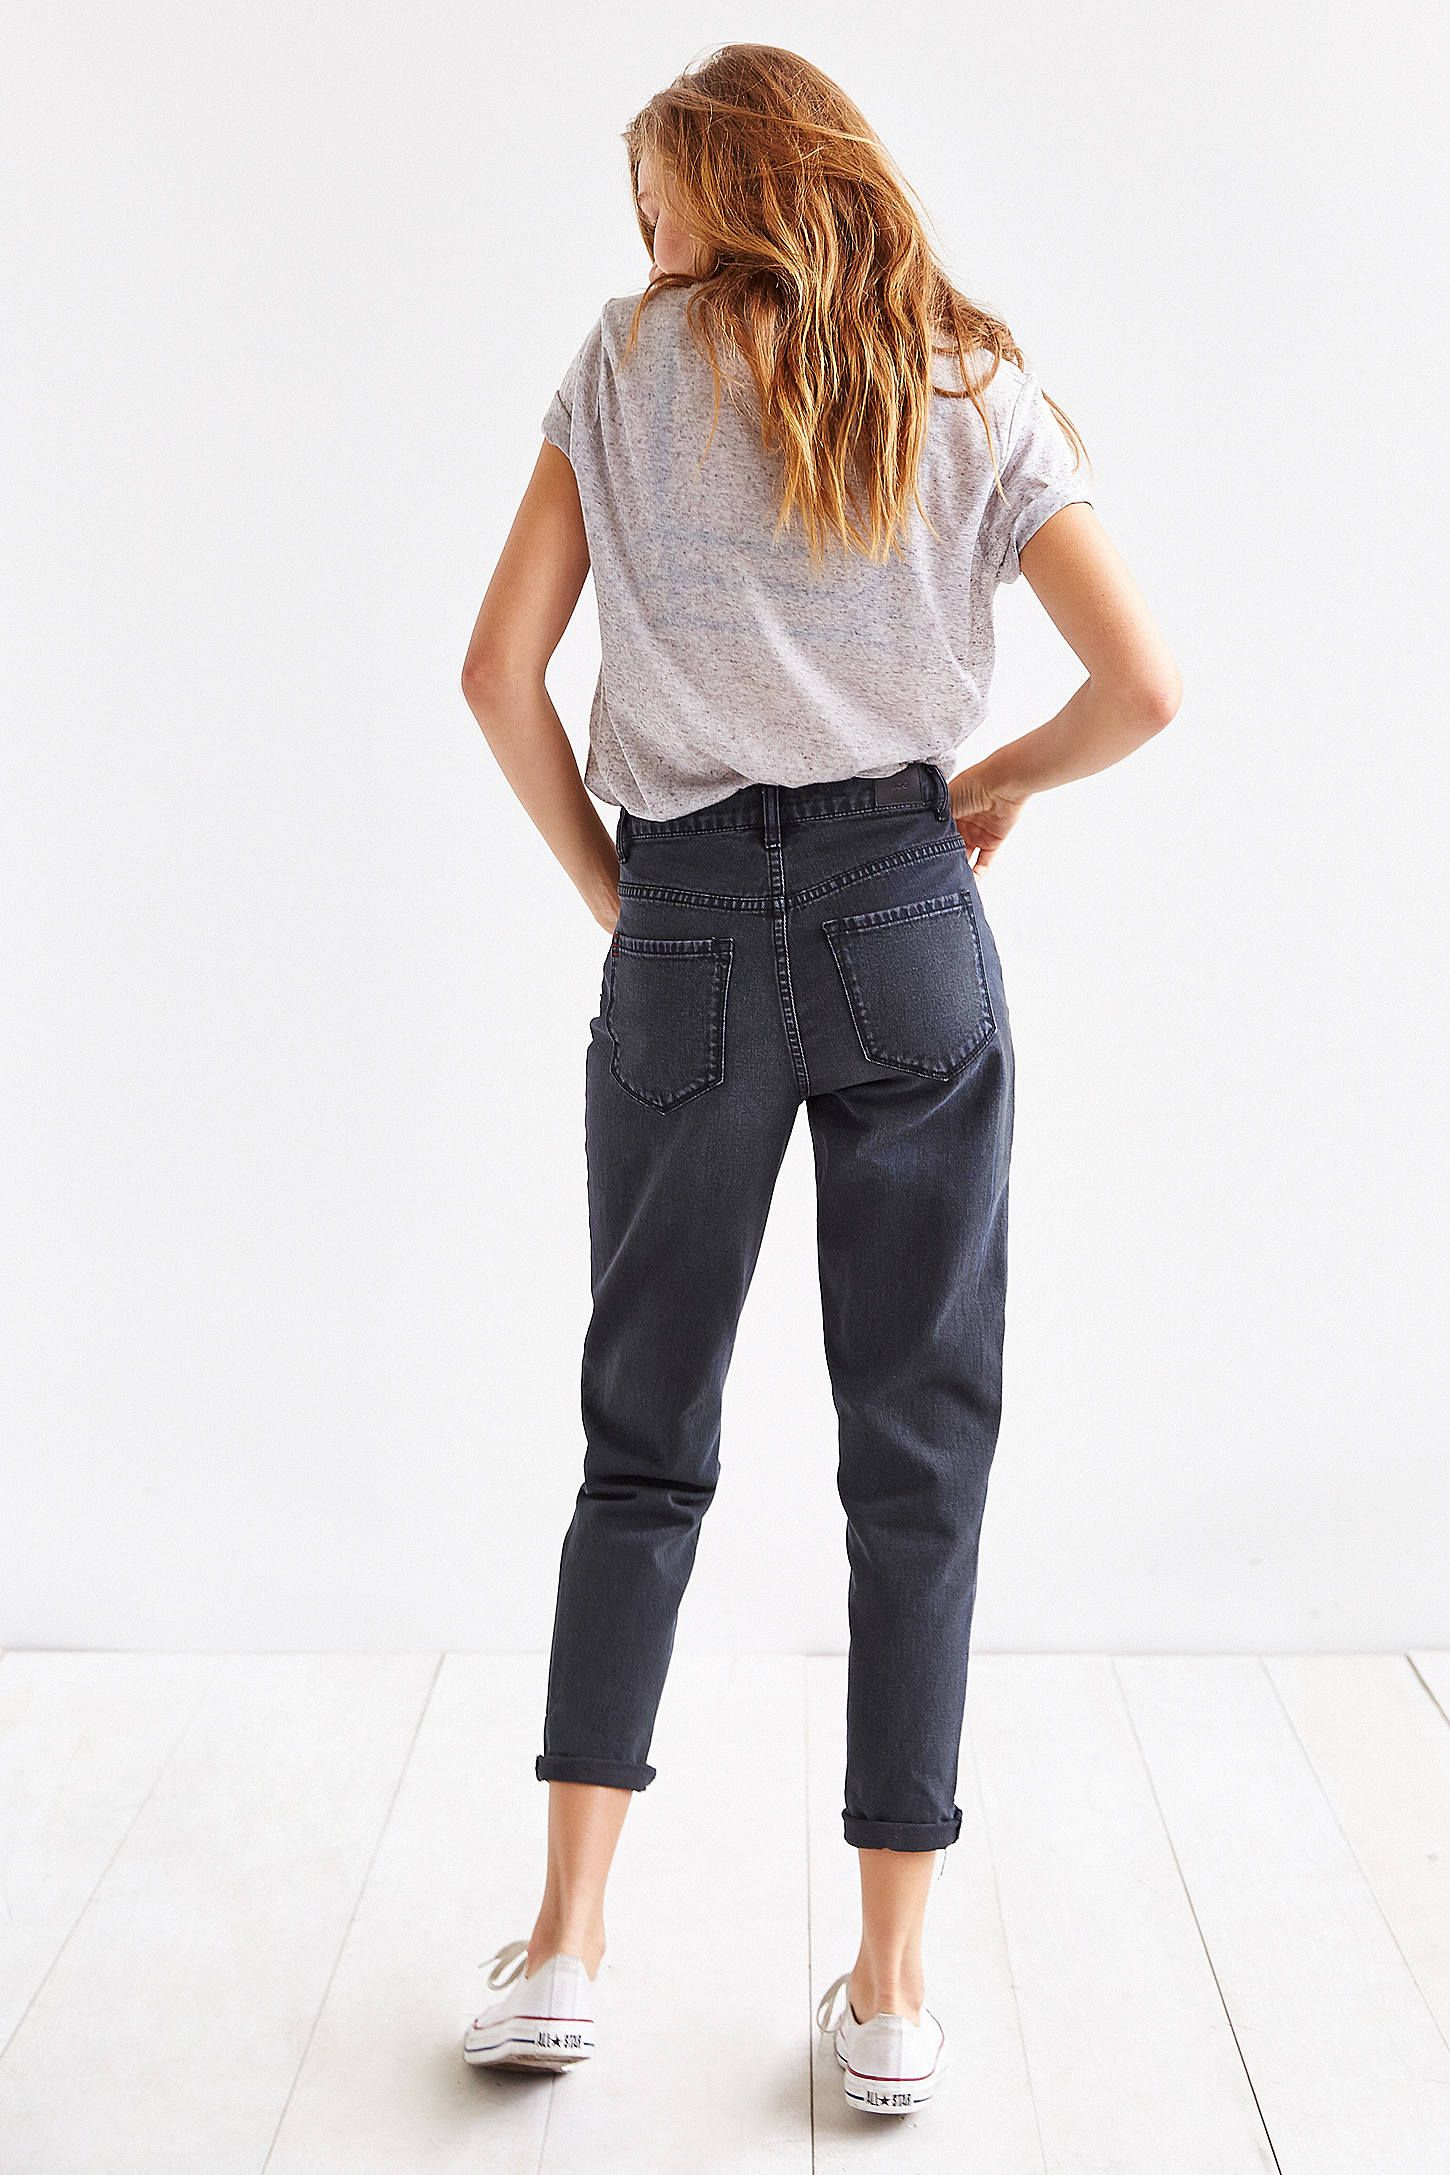 d34919a0f6 Shop BDG Mom Jean - Black at Urban Outfitters today. We carry all the  latest styles, colors and brands for you to choose from right here.